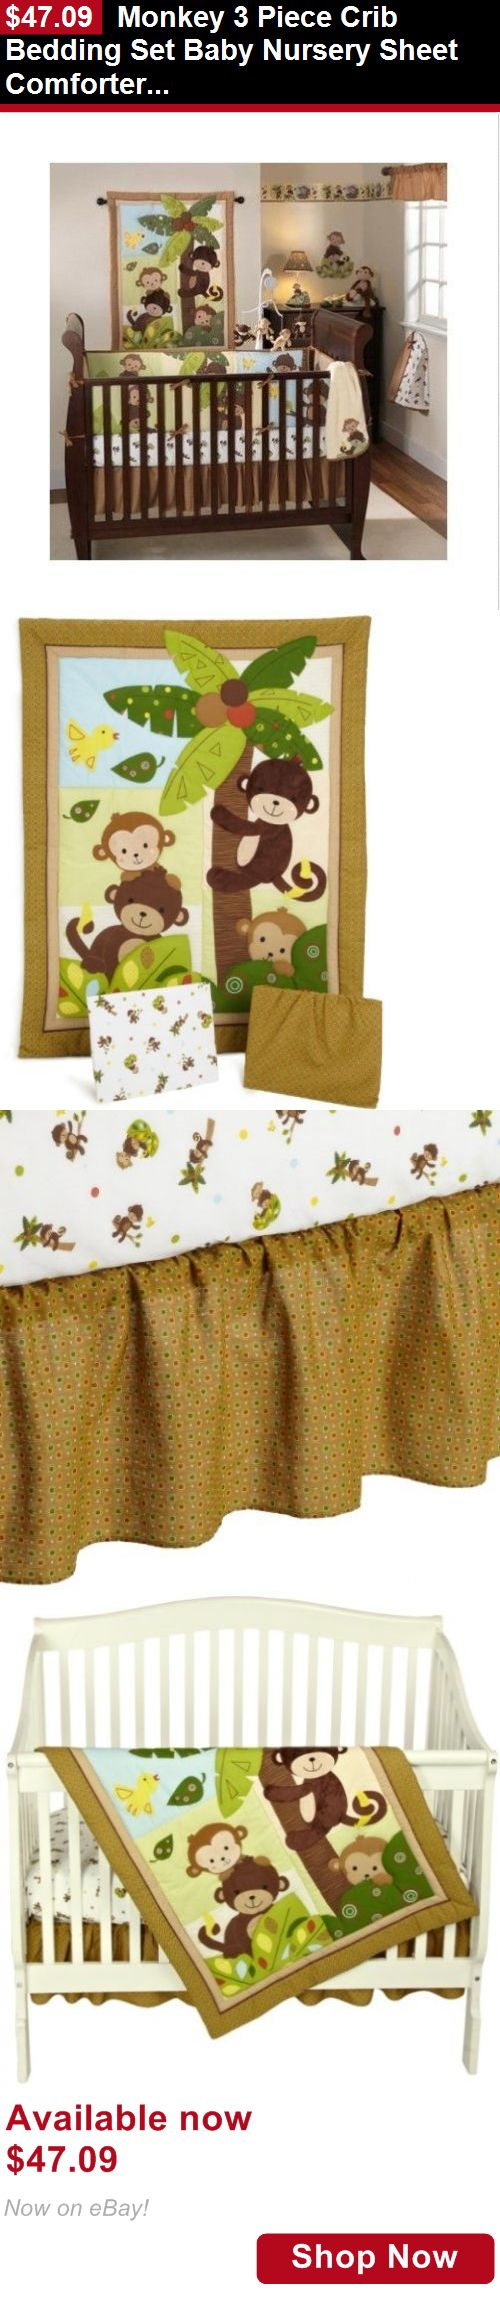 Nursery Bedding Sets: Monkey 3 Piece Crib Bedding Set Baby Nursery Sheet Comforter Infant Bed Quilt BUY IT NOW ONLY: $47.09